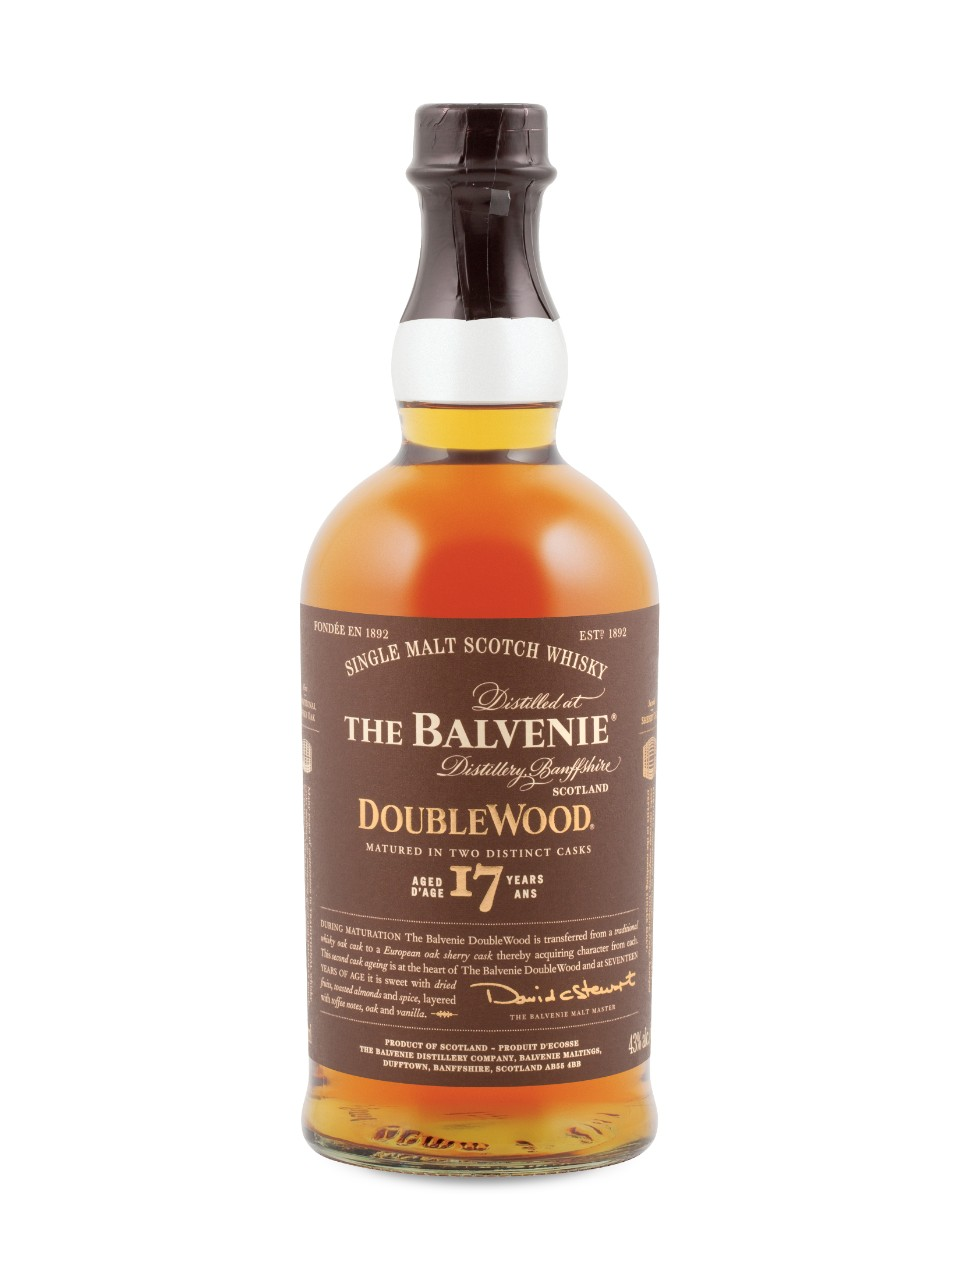 Image for The Balvenie DoubleWood 17 Year Old Single Malt Scotch Whisky from LCBO